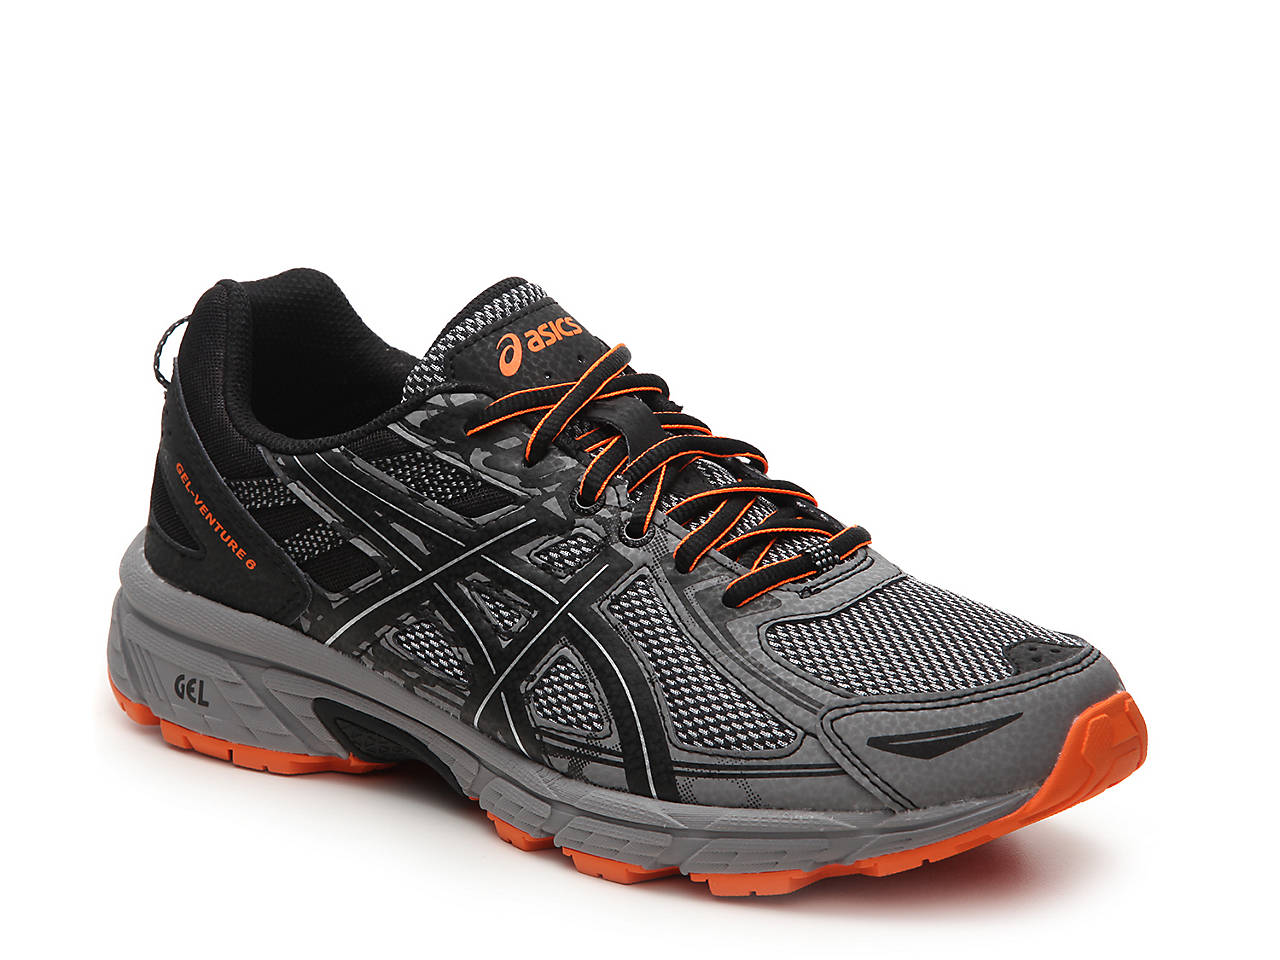 ASICS GEL-Venture 6 Trail Running Shoe - Men's Men's Shoes